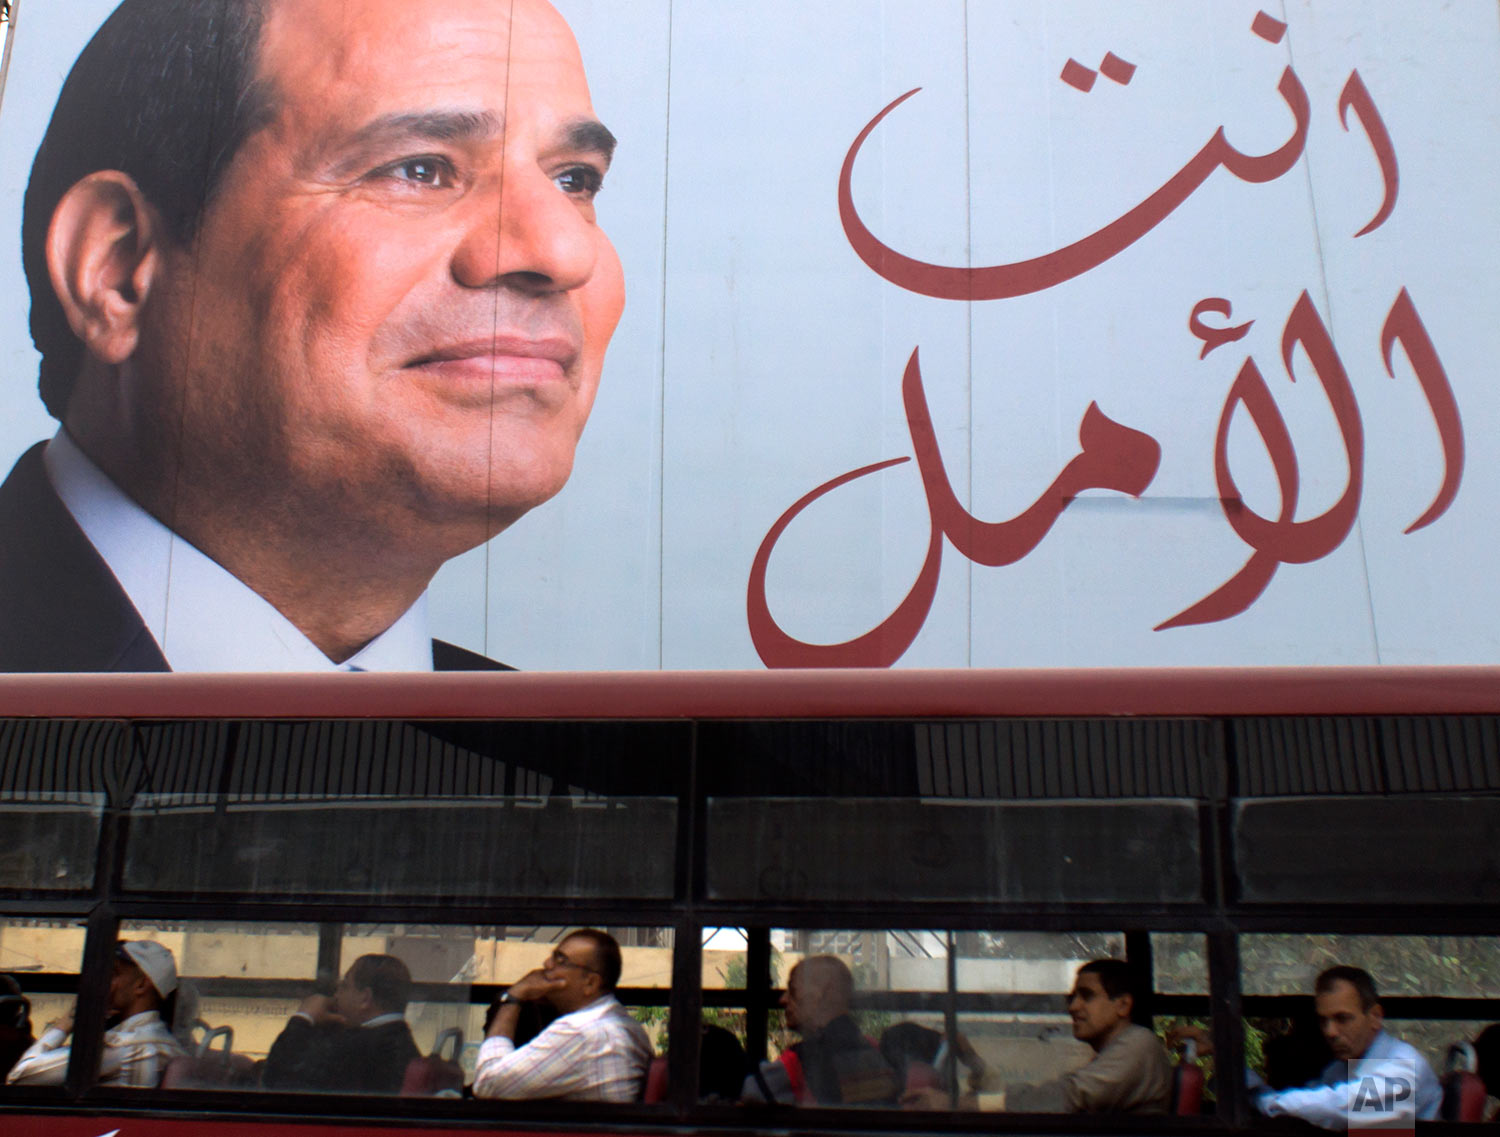 """People travel on a public bus under an election banner for Egyptian President Abdel-Fattah el-Sissi with Arabic that reads, """"you are the hope,"""" in Cairo, Egypt, Wednesday, March 28, 2018. (AP Photo/Amr Nabil)"""